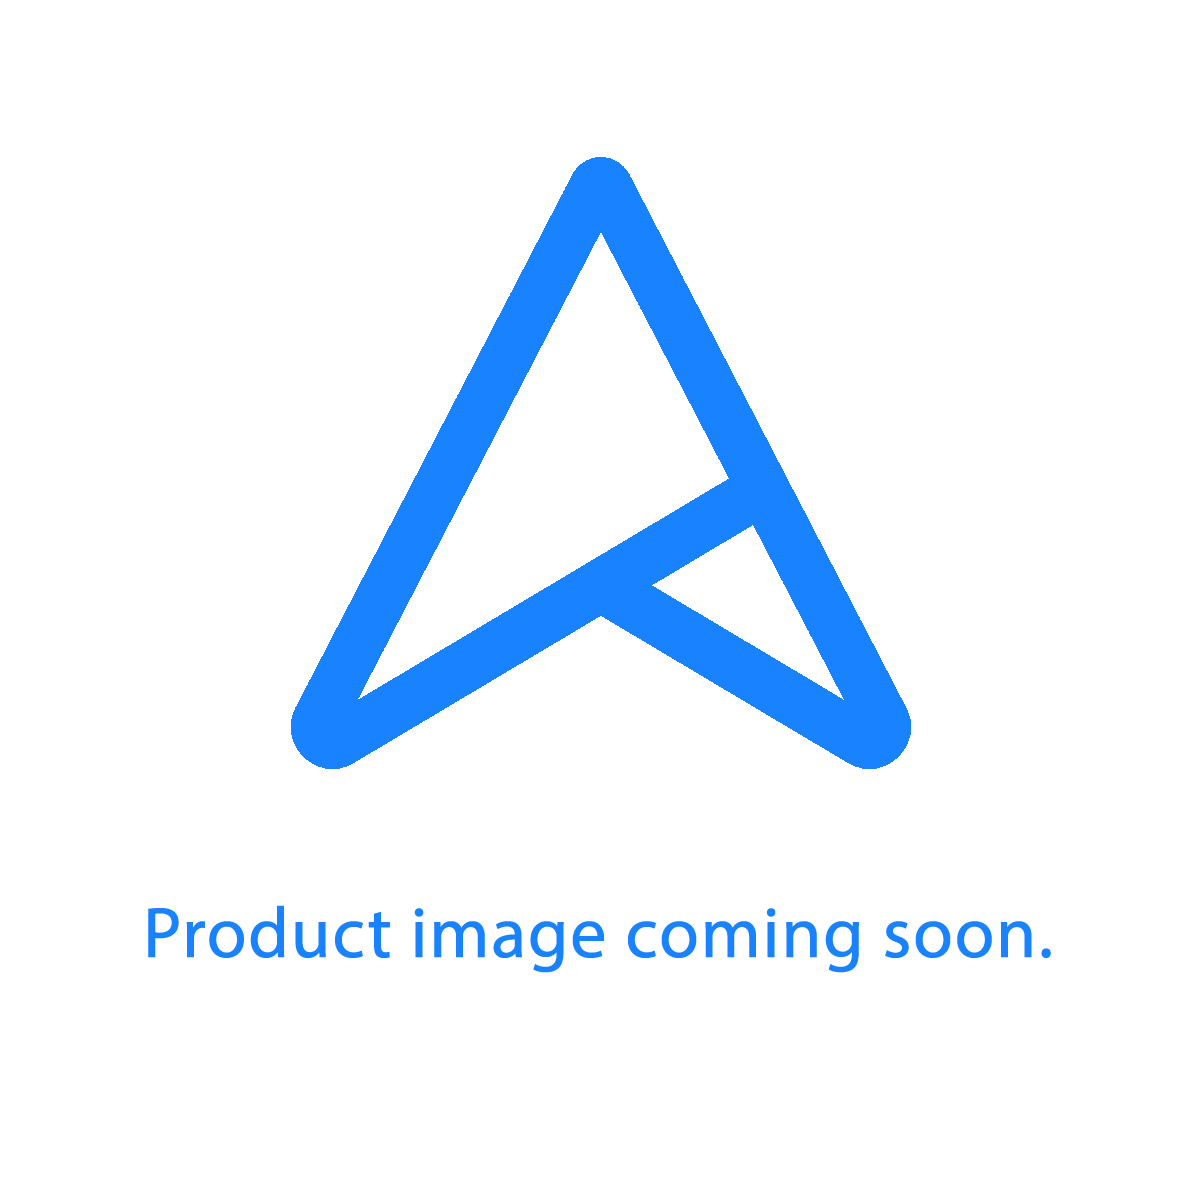 ROG Zephyrus G14 GA401QM-RTX3060 with AniMe Matrix™